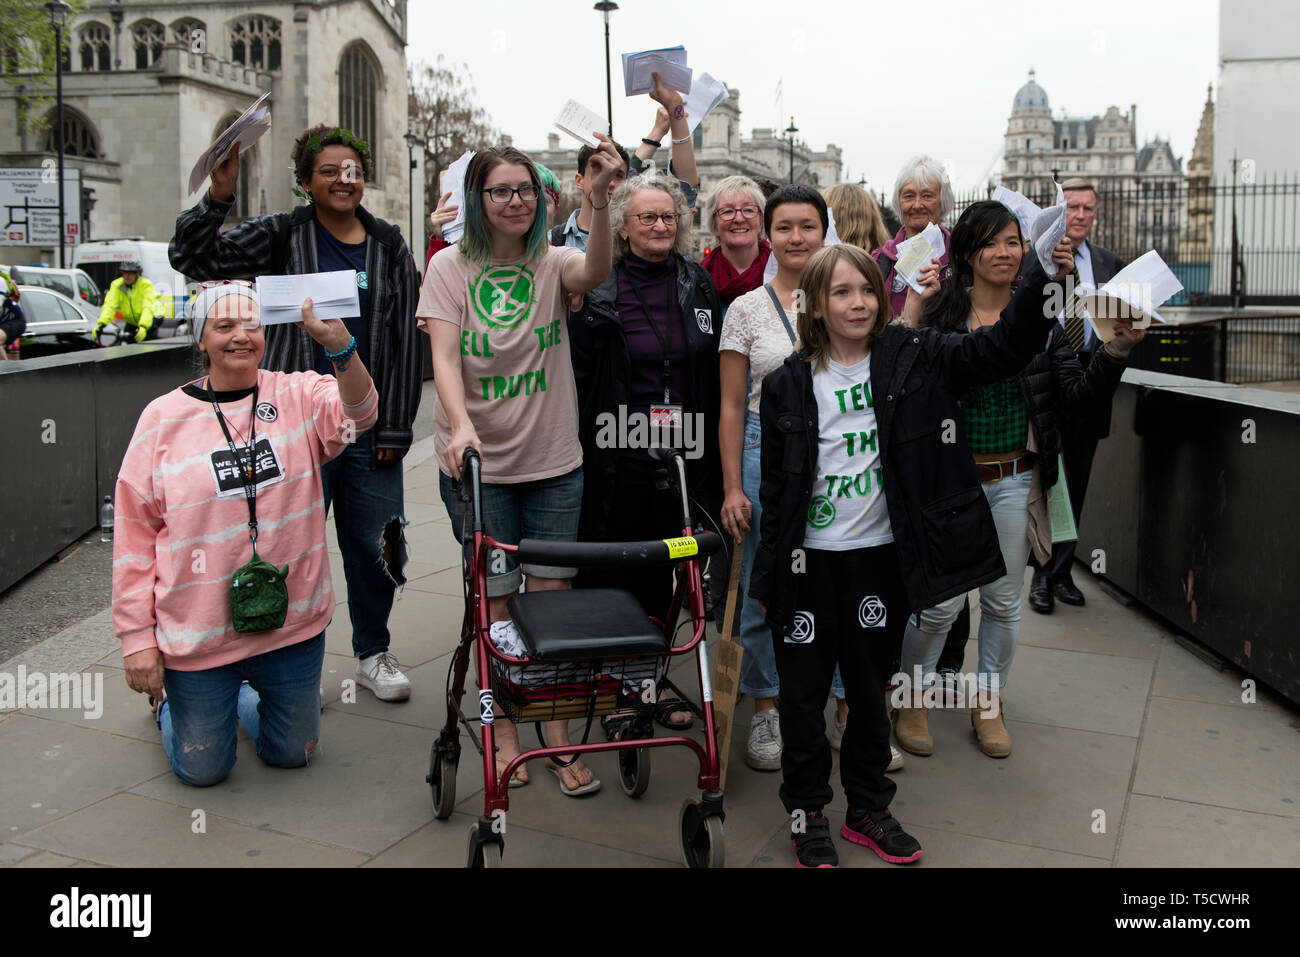 Baroness Jenny Jones (centre) walking to Parliament with ten Extinction Rebellion protester selected to deliver letters to the MPs.  Extinction Rebellion protesters march from Marble Arch to Parliament Square, attempting to deliver letters to their MPs. Extinction Rebellion activists were permitted to be in Parliament Square but not to enter Parliament. After several attempts to deliver the letters, the activists reached an agreement with MPs through the police. Ten activists were allowed to deliver the letters in the company of Baroness Jenny Jones (Green party). Philosopher and Green campaig - Stock Image